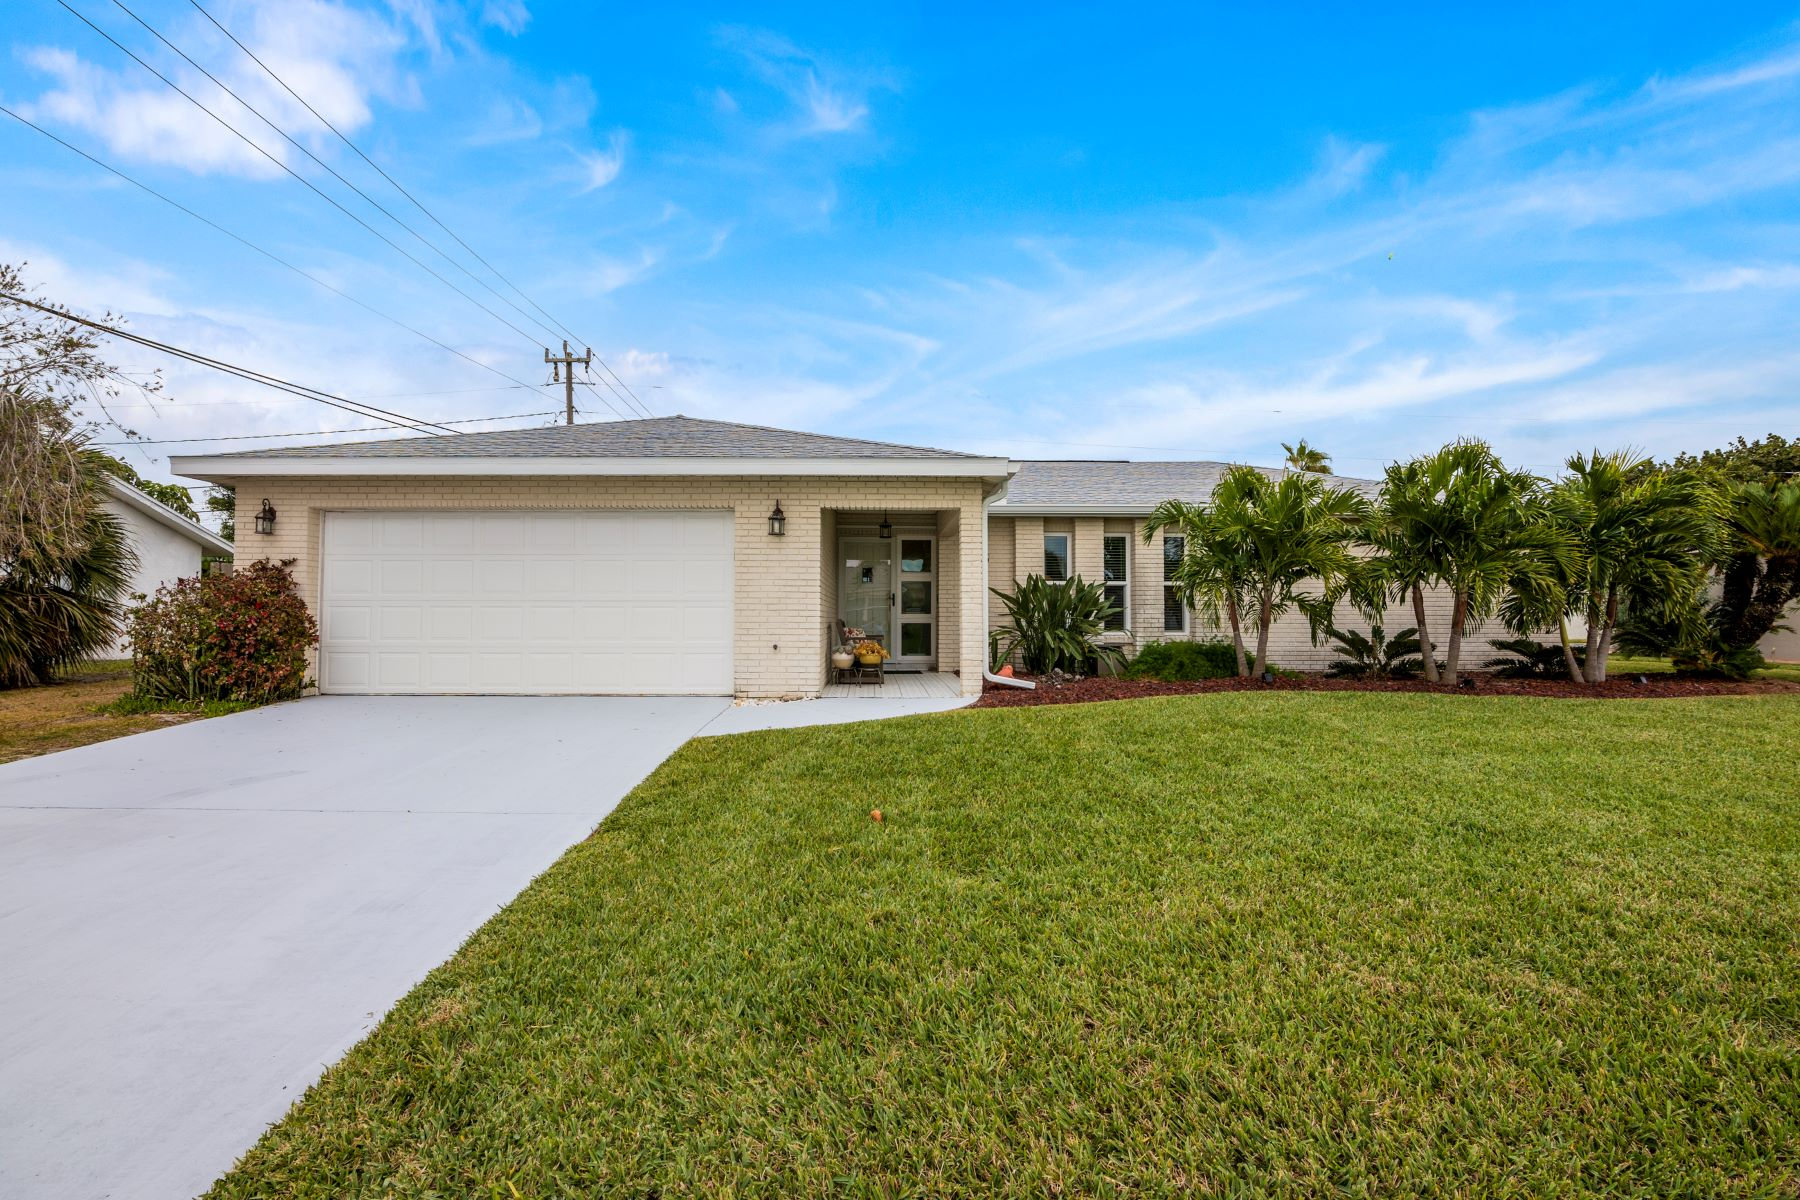 Single Family Homes for Sale at 555 Coconut Street Satellite Beach, Florida 32937 United States